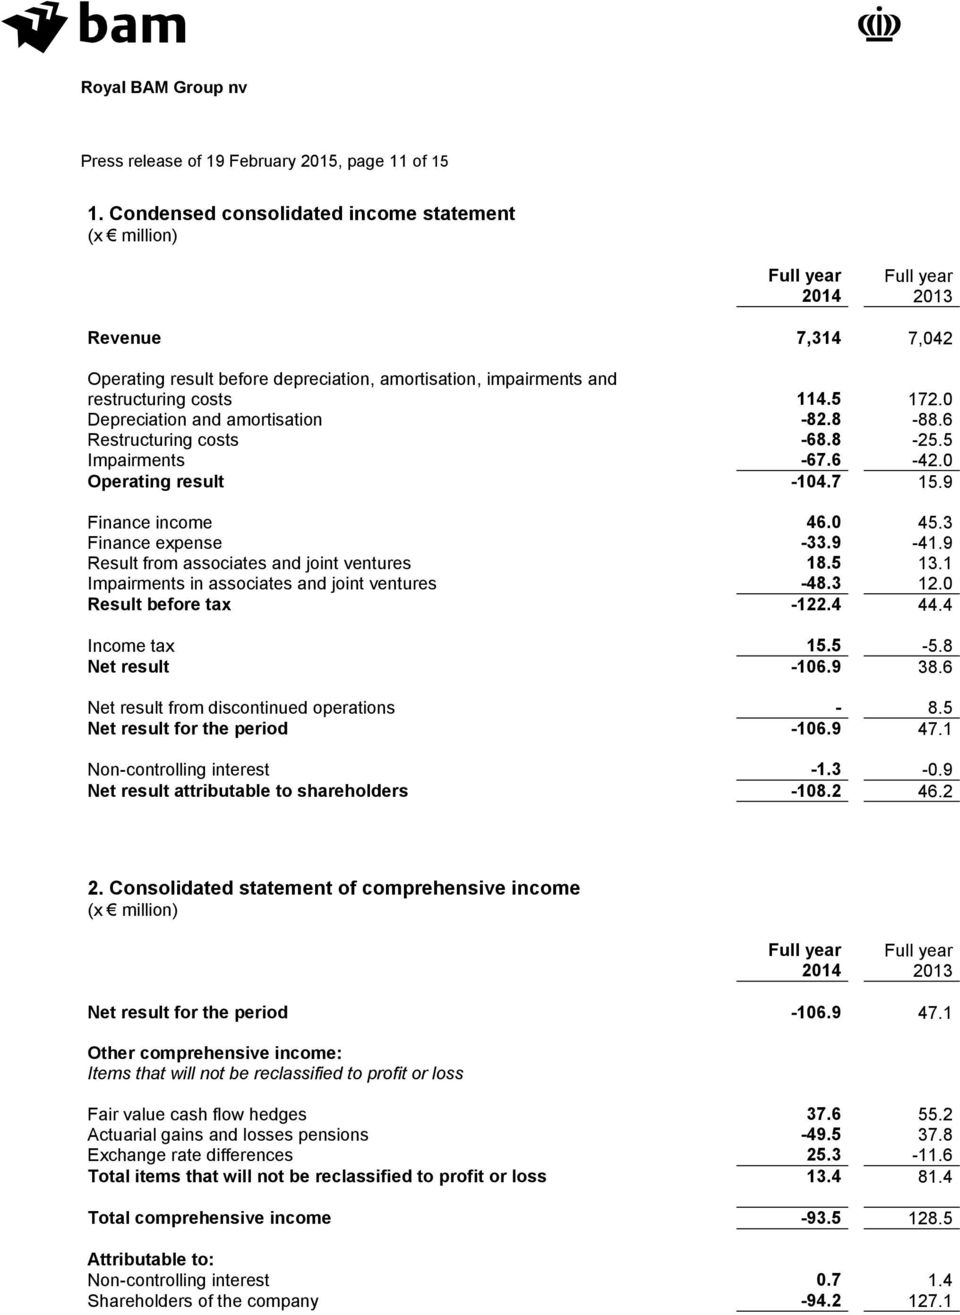 0 Depreciation and amortisation -82.8-88.6 Restructuring costs -68.8-25.5 Impairments -67.6-42.0 Operating result -104.7 15.9 Finance income 46.0 45.3 Finance expense -33.9-41.